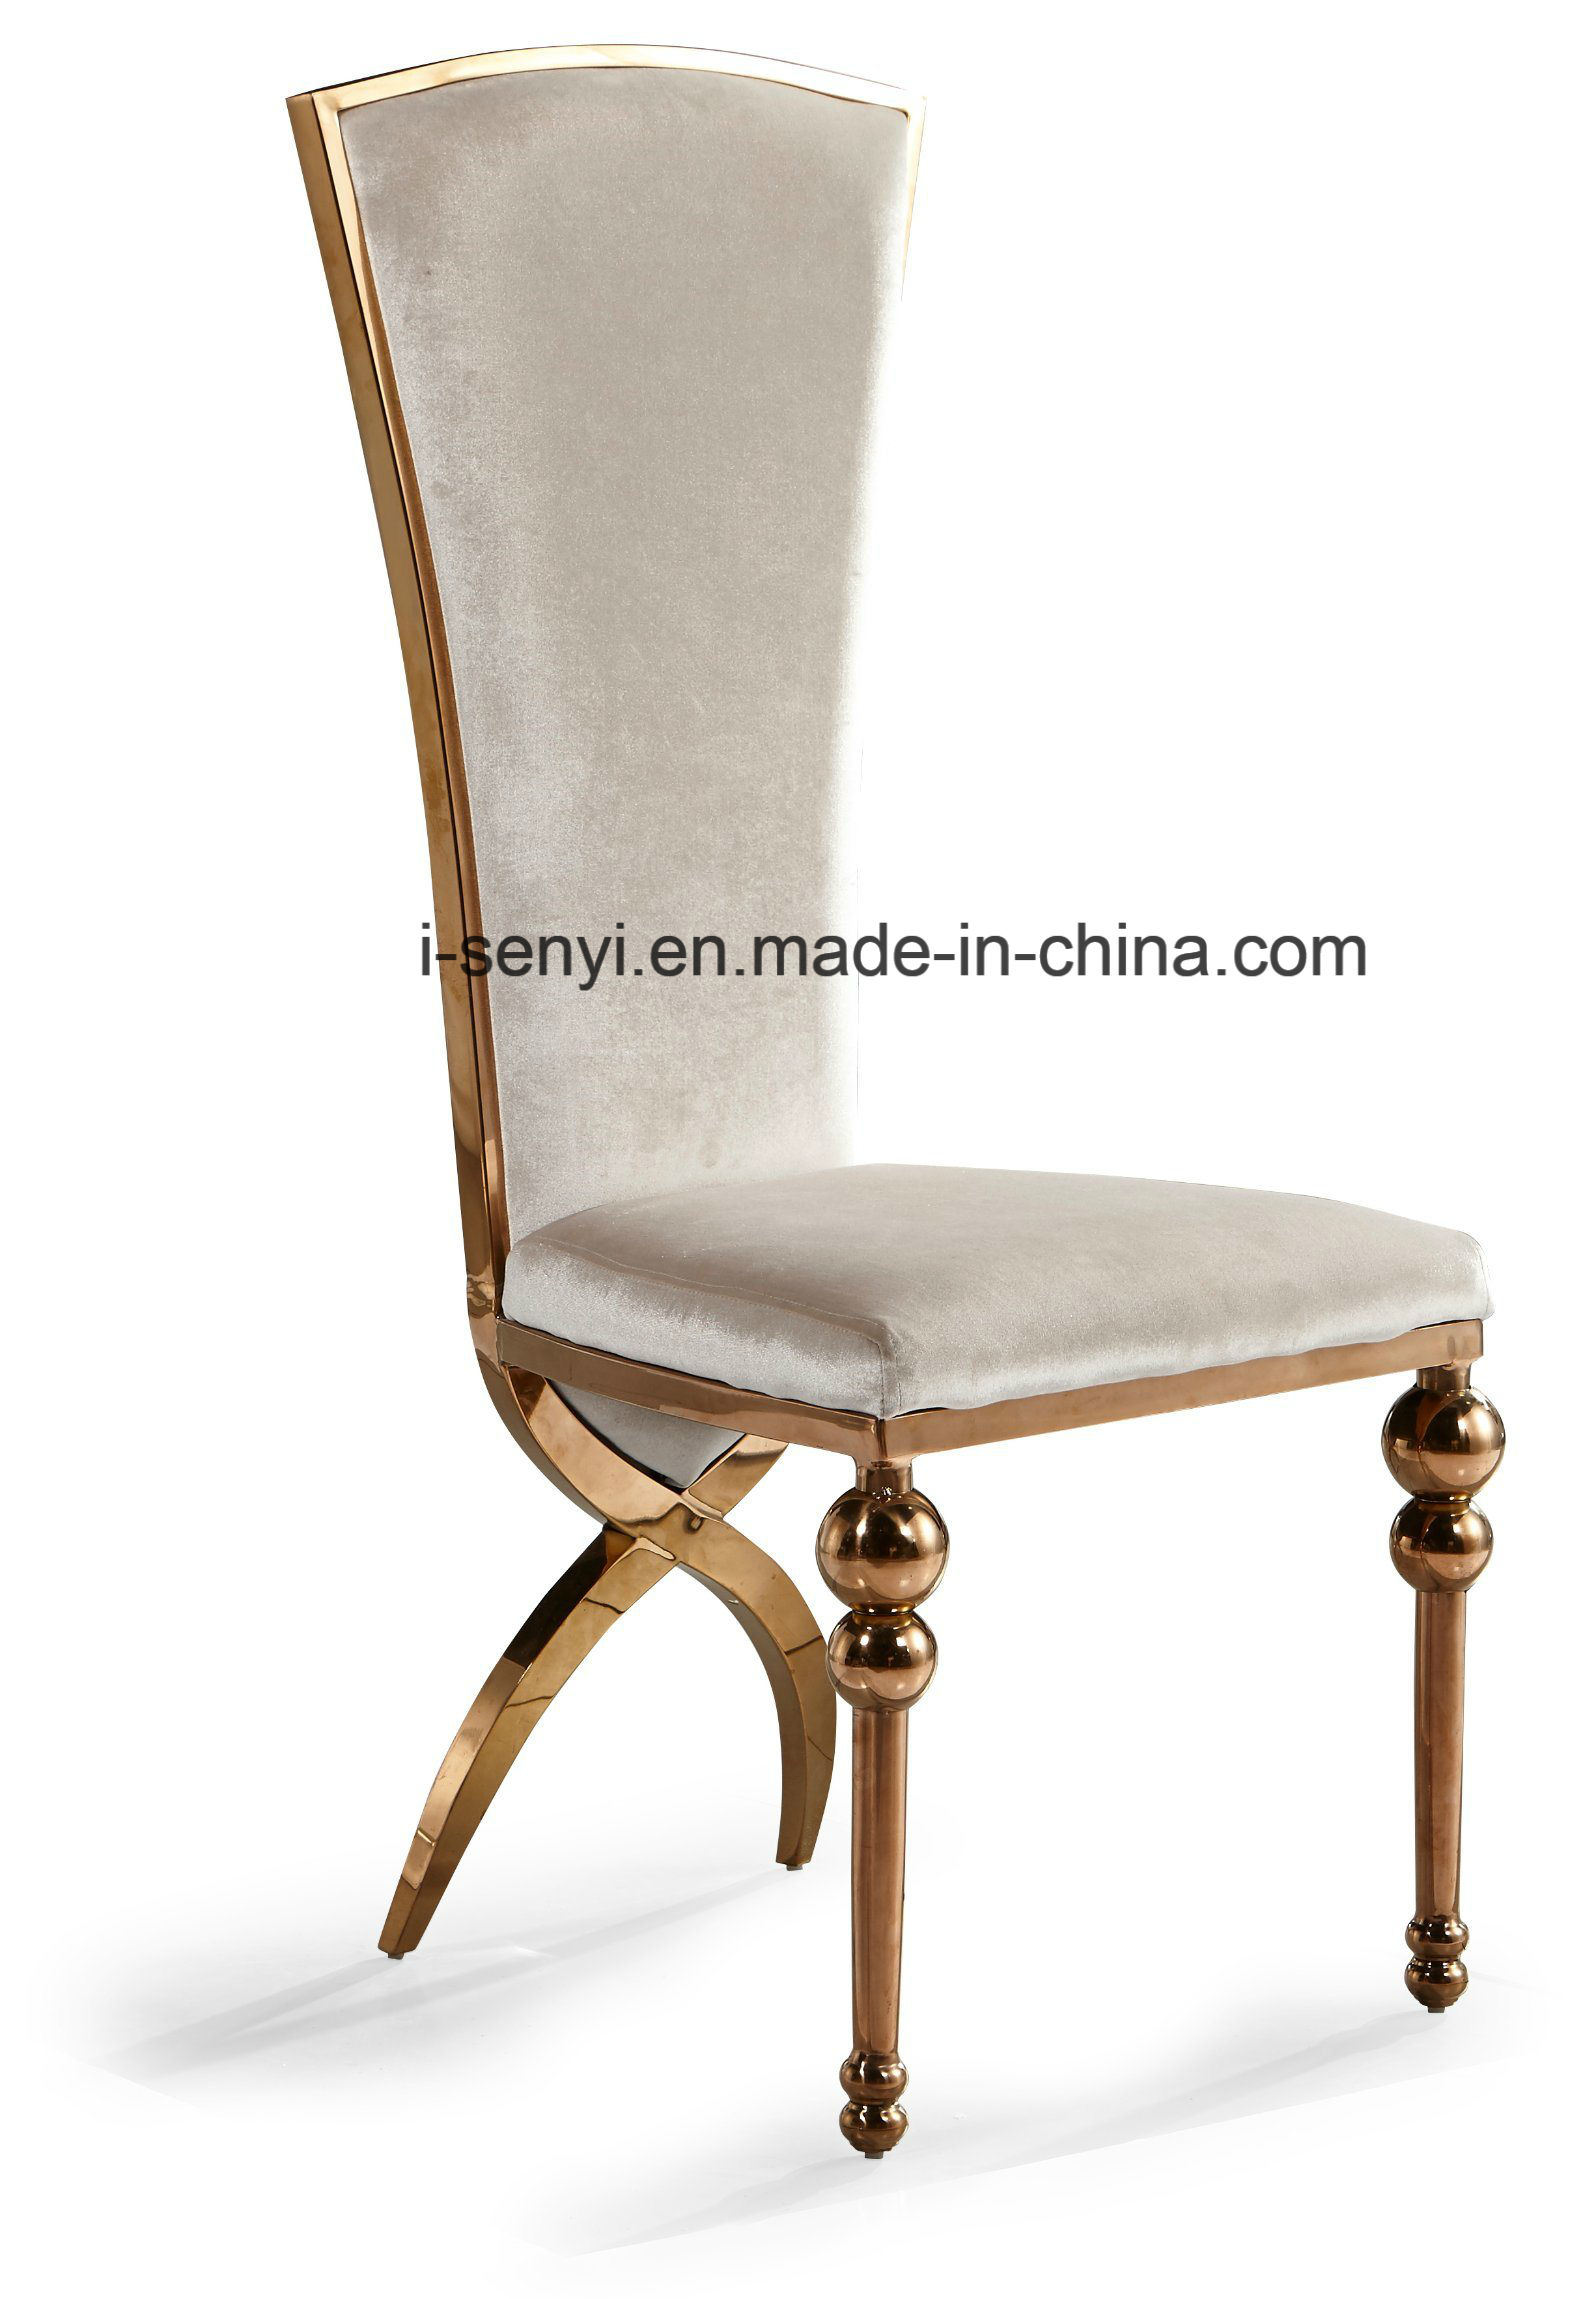 [Hot Item] Gold Plated Hotel Chair Banquet Chair Wedding Chair Stainless  Steel Chair Dining Chair